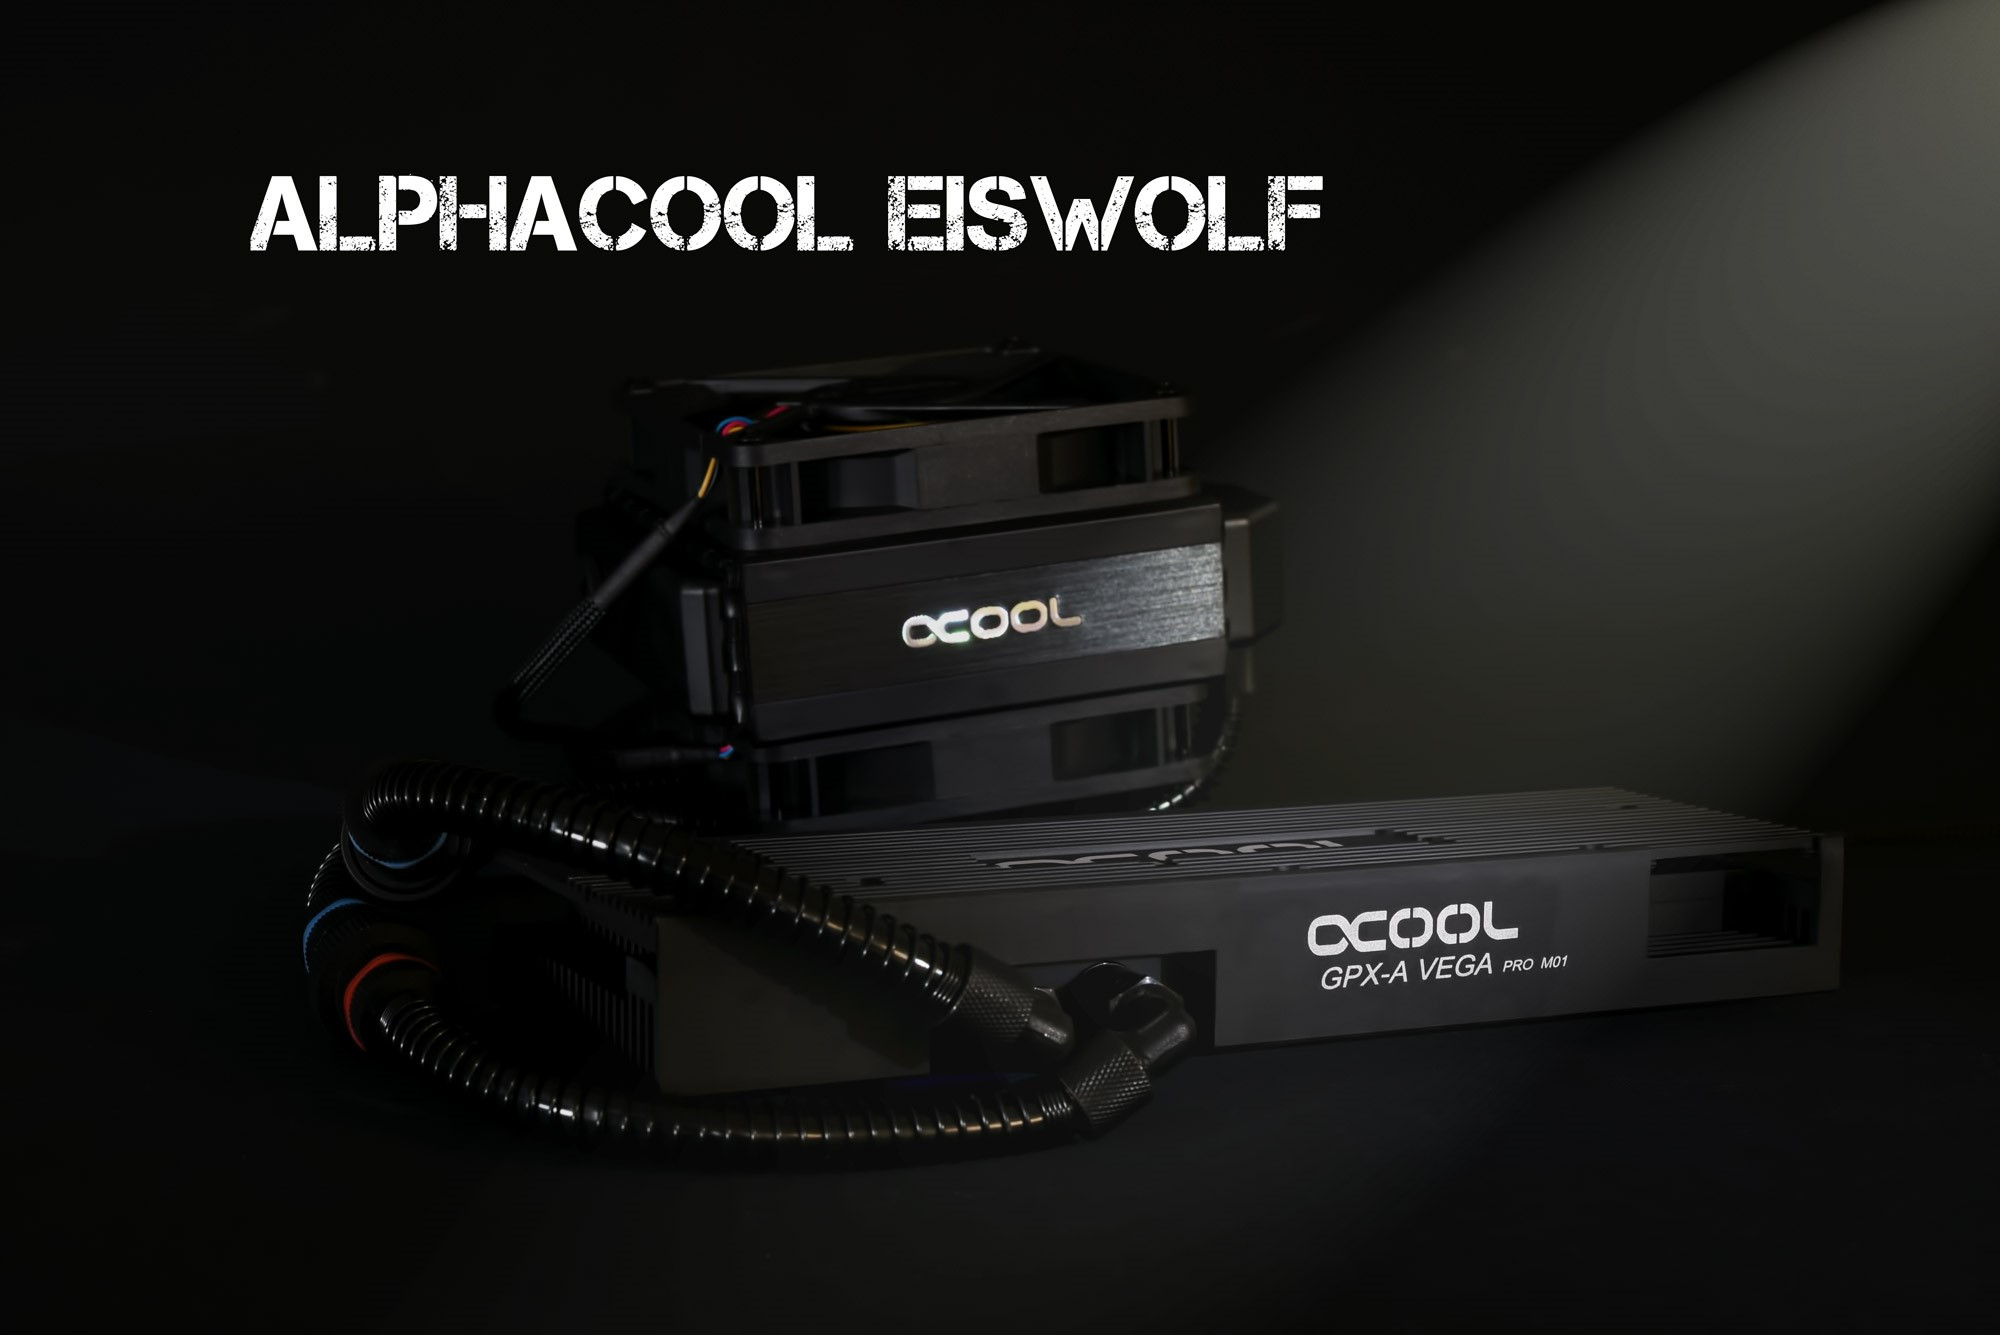 Alphacool ut60 420 dating